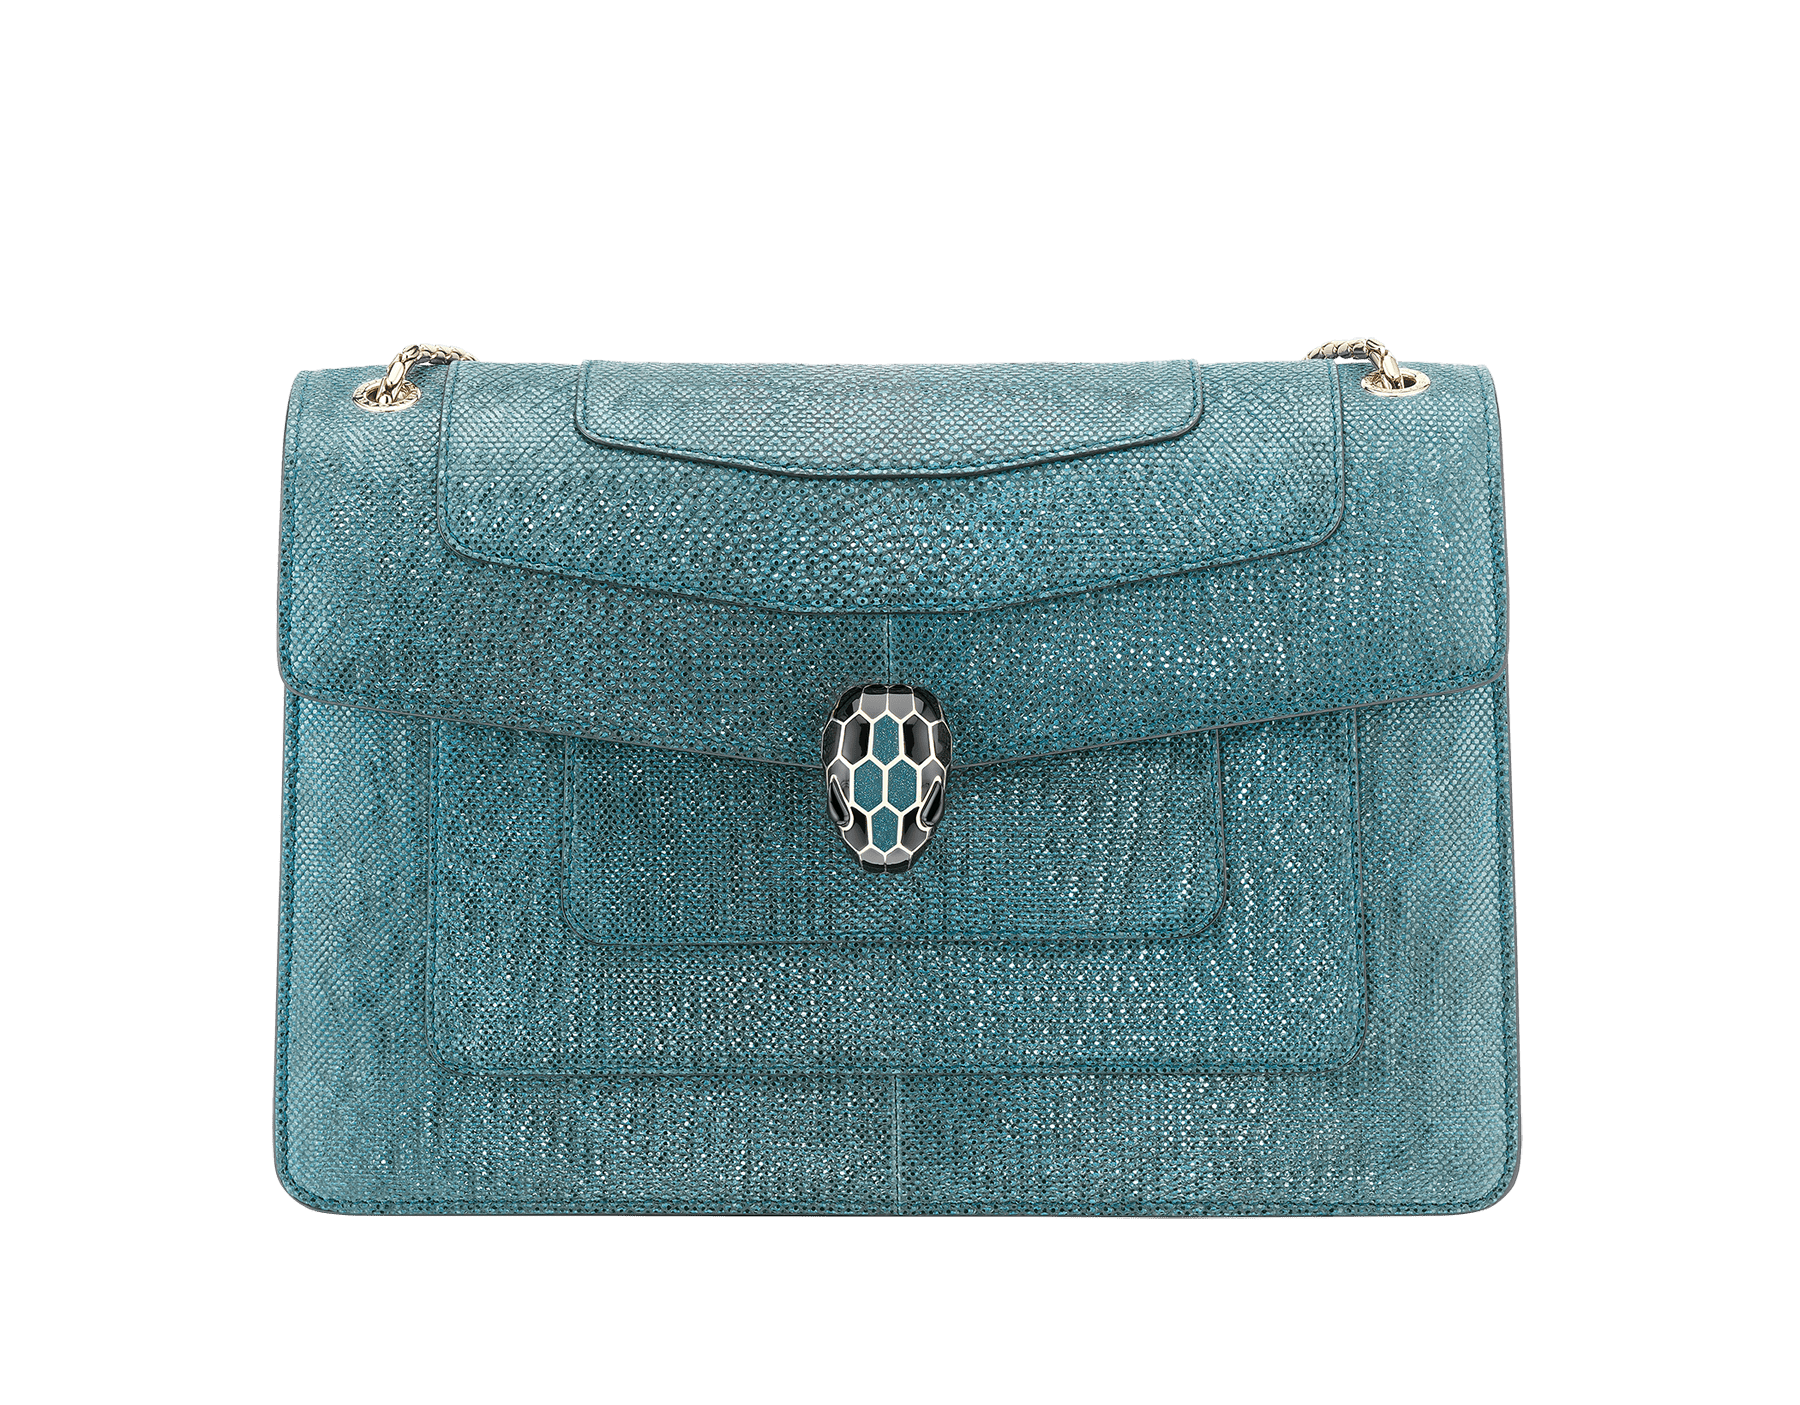 """""""Serpenti Forever"""" shoulder bag in deep jade metallic karung skin. Iconic snakehead closure in light gold-plated brass enriched with black and glitter deep jade enamel and black onyx eyes. 287940 image 1"""